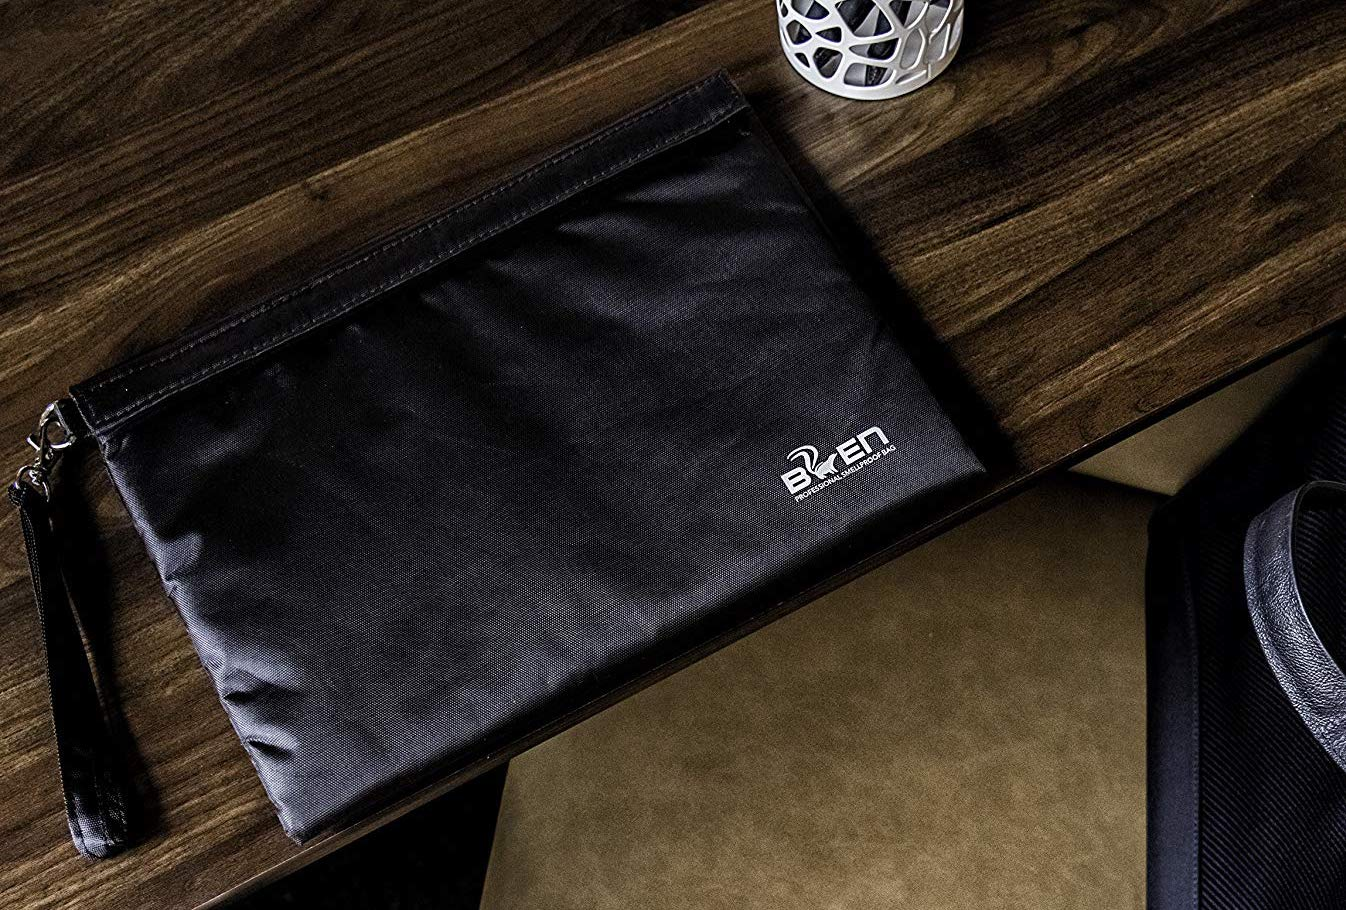 Smellproof pouch is a great bag to keep smells contained.